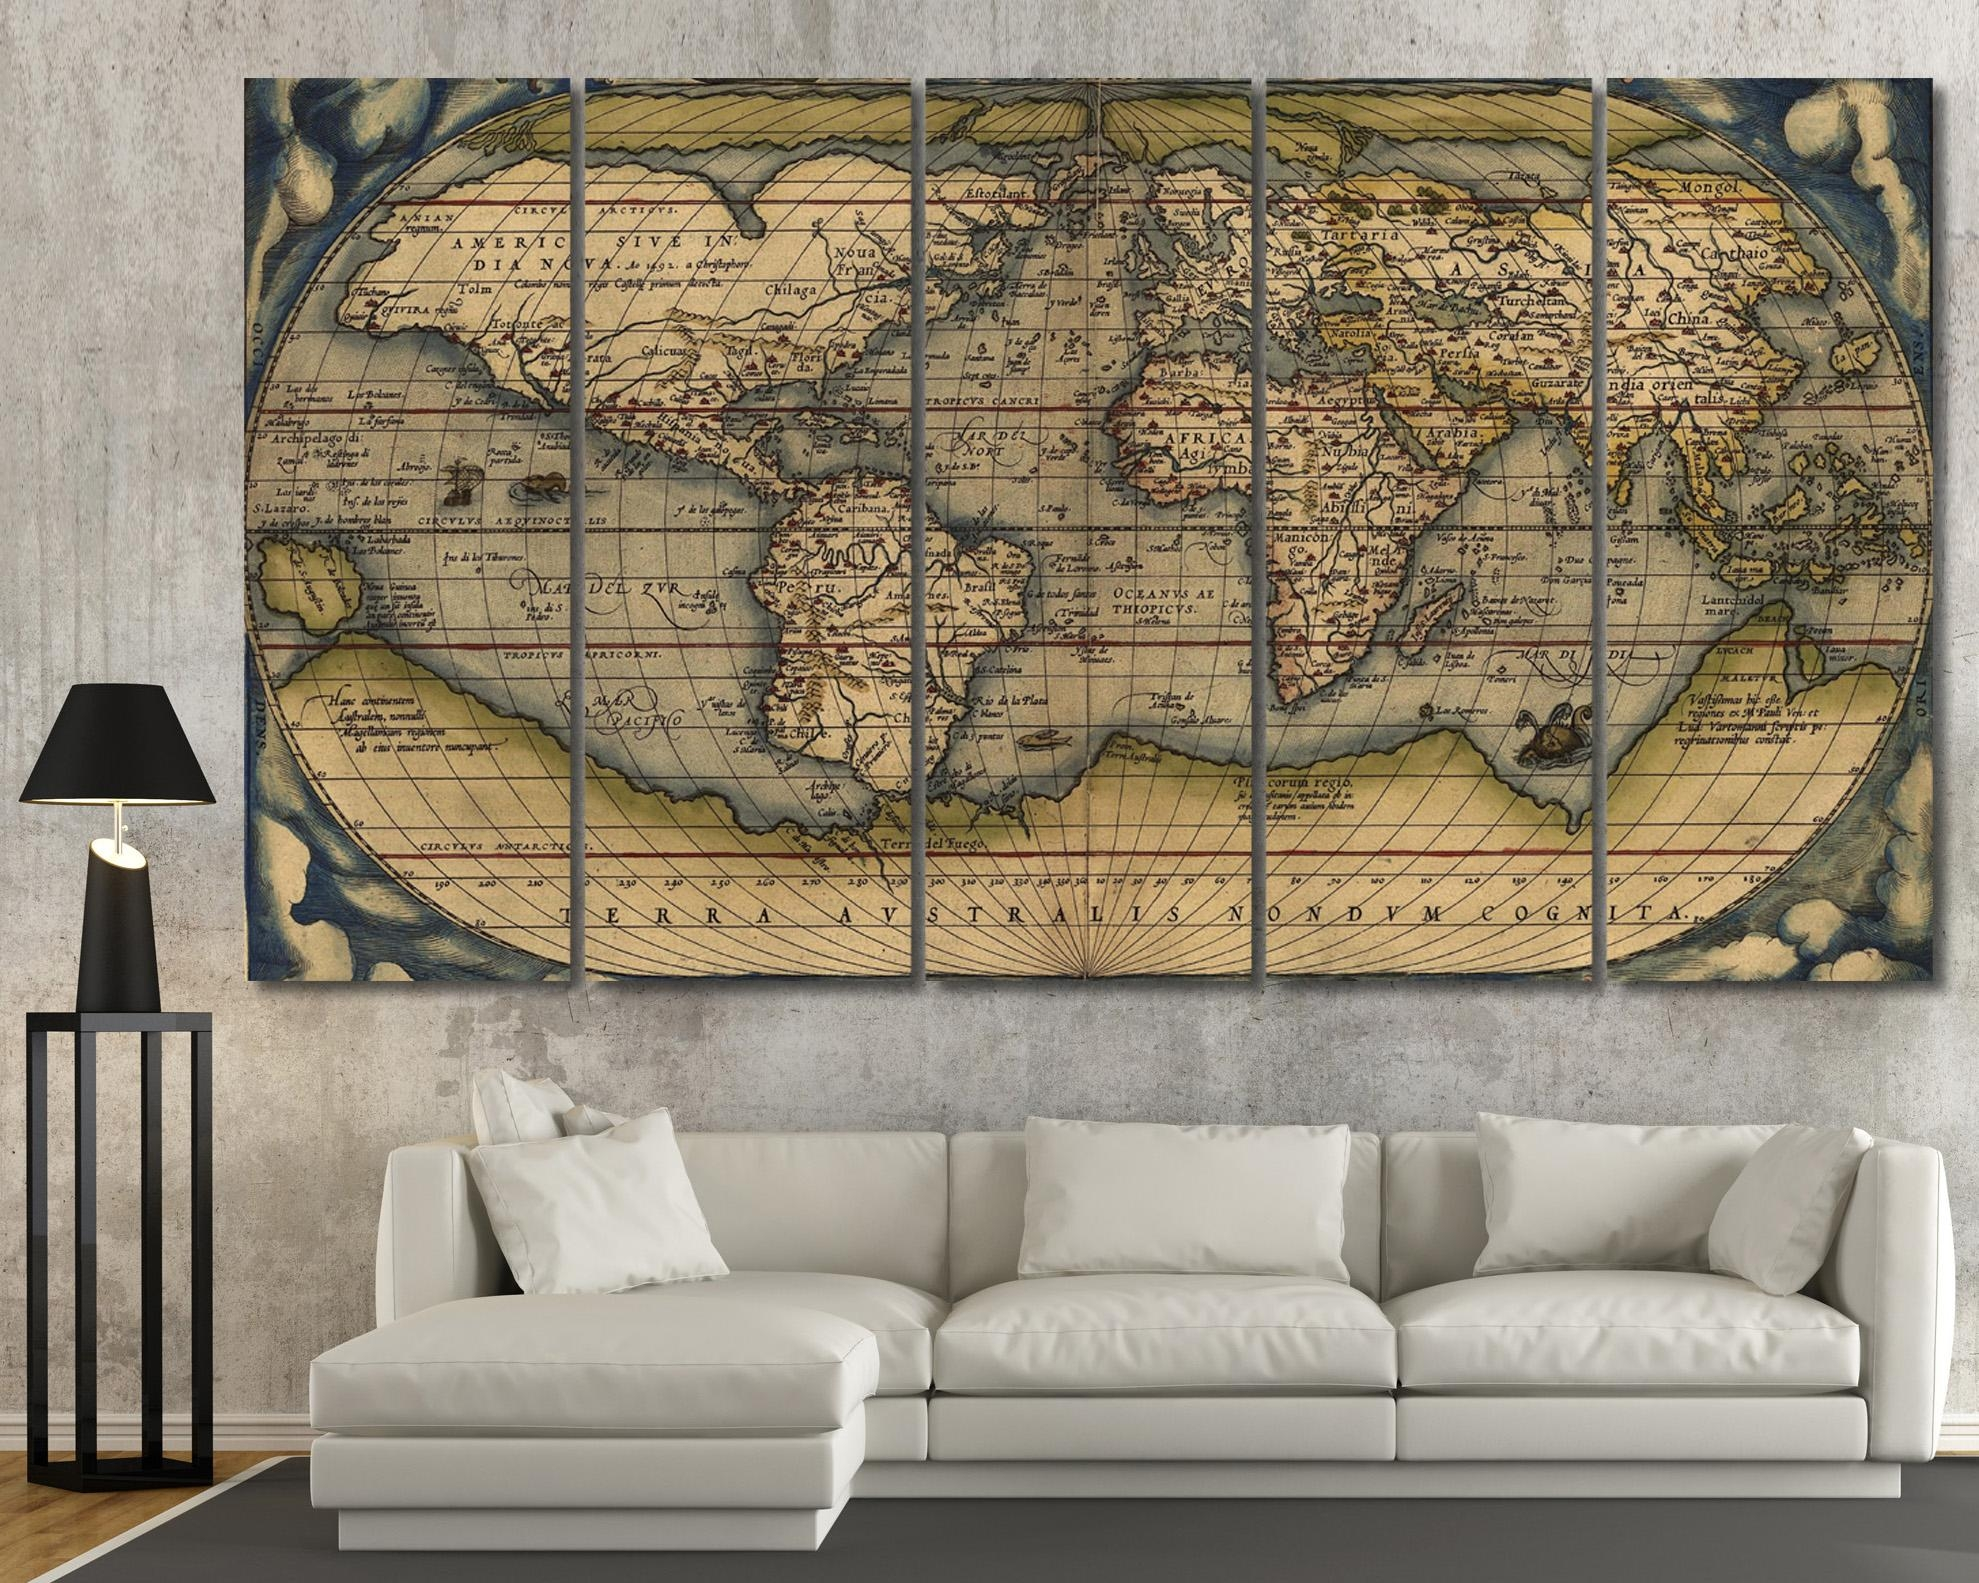 Large Vintage Wall Art Old World Map At Texelprintart Within Map Wall Art (Image 10 of 20)